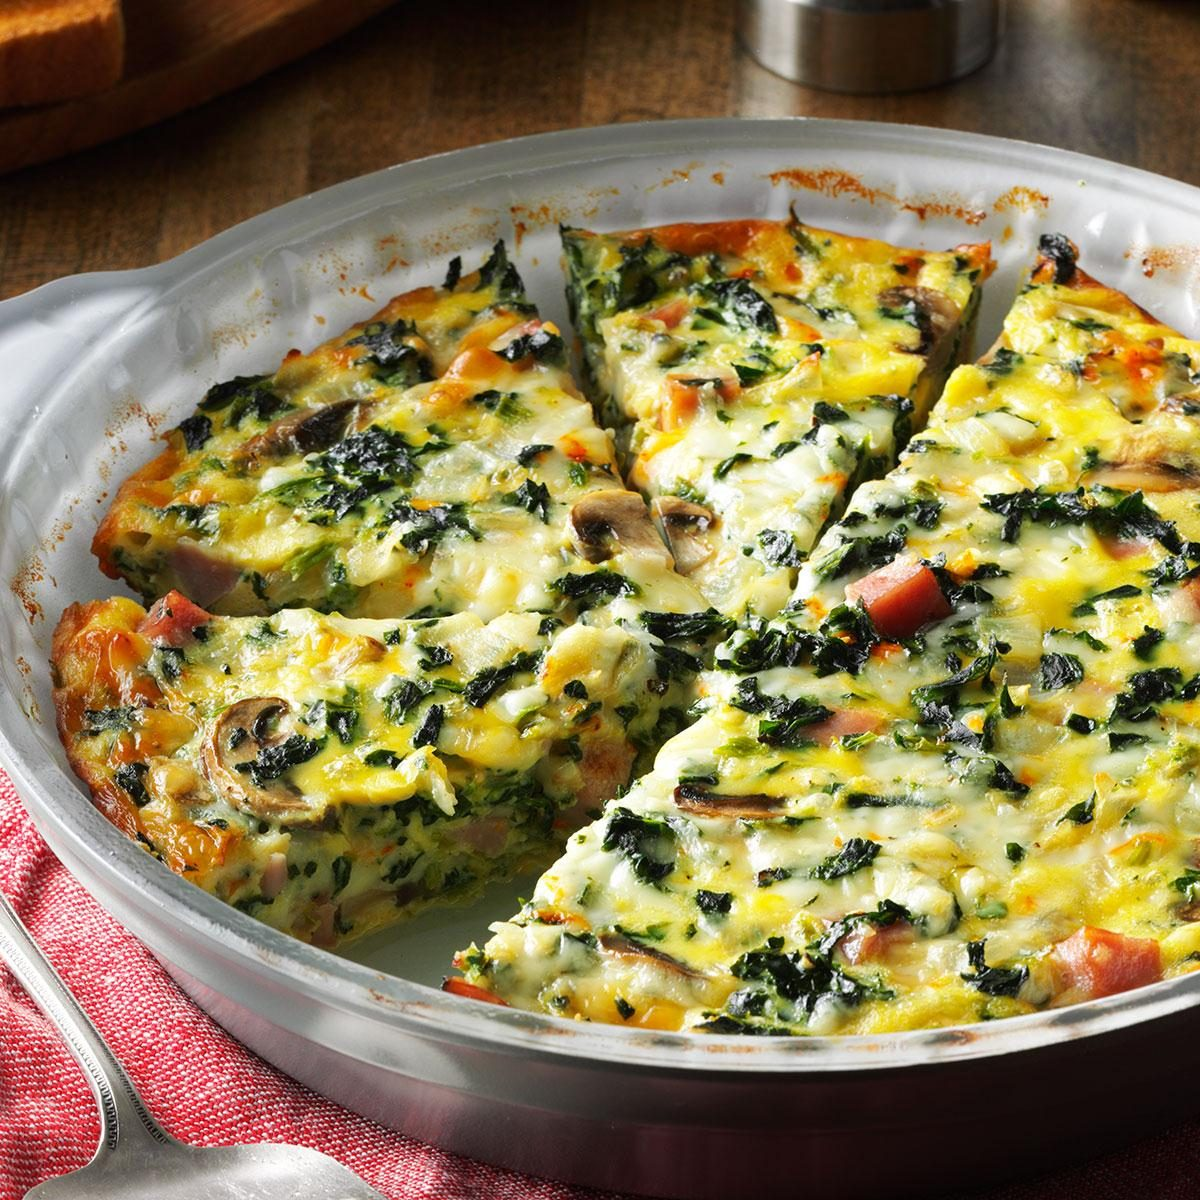 How to make crustless quiche fluffy